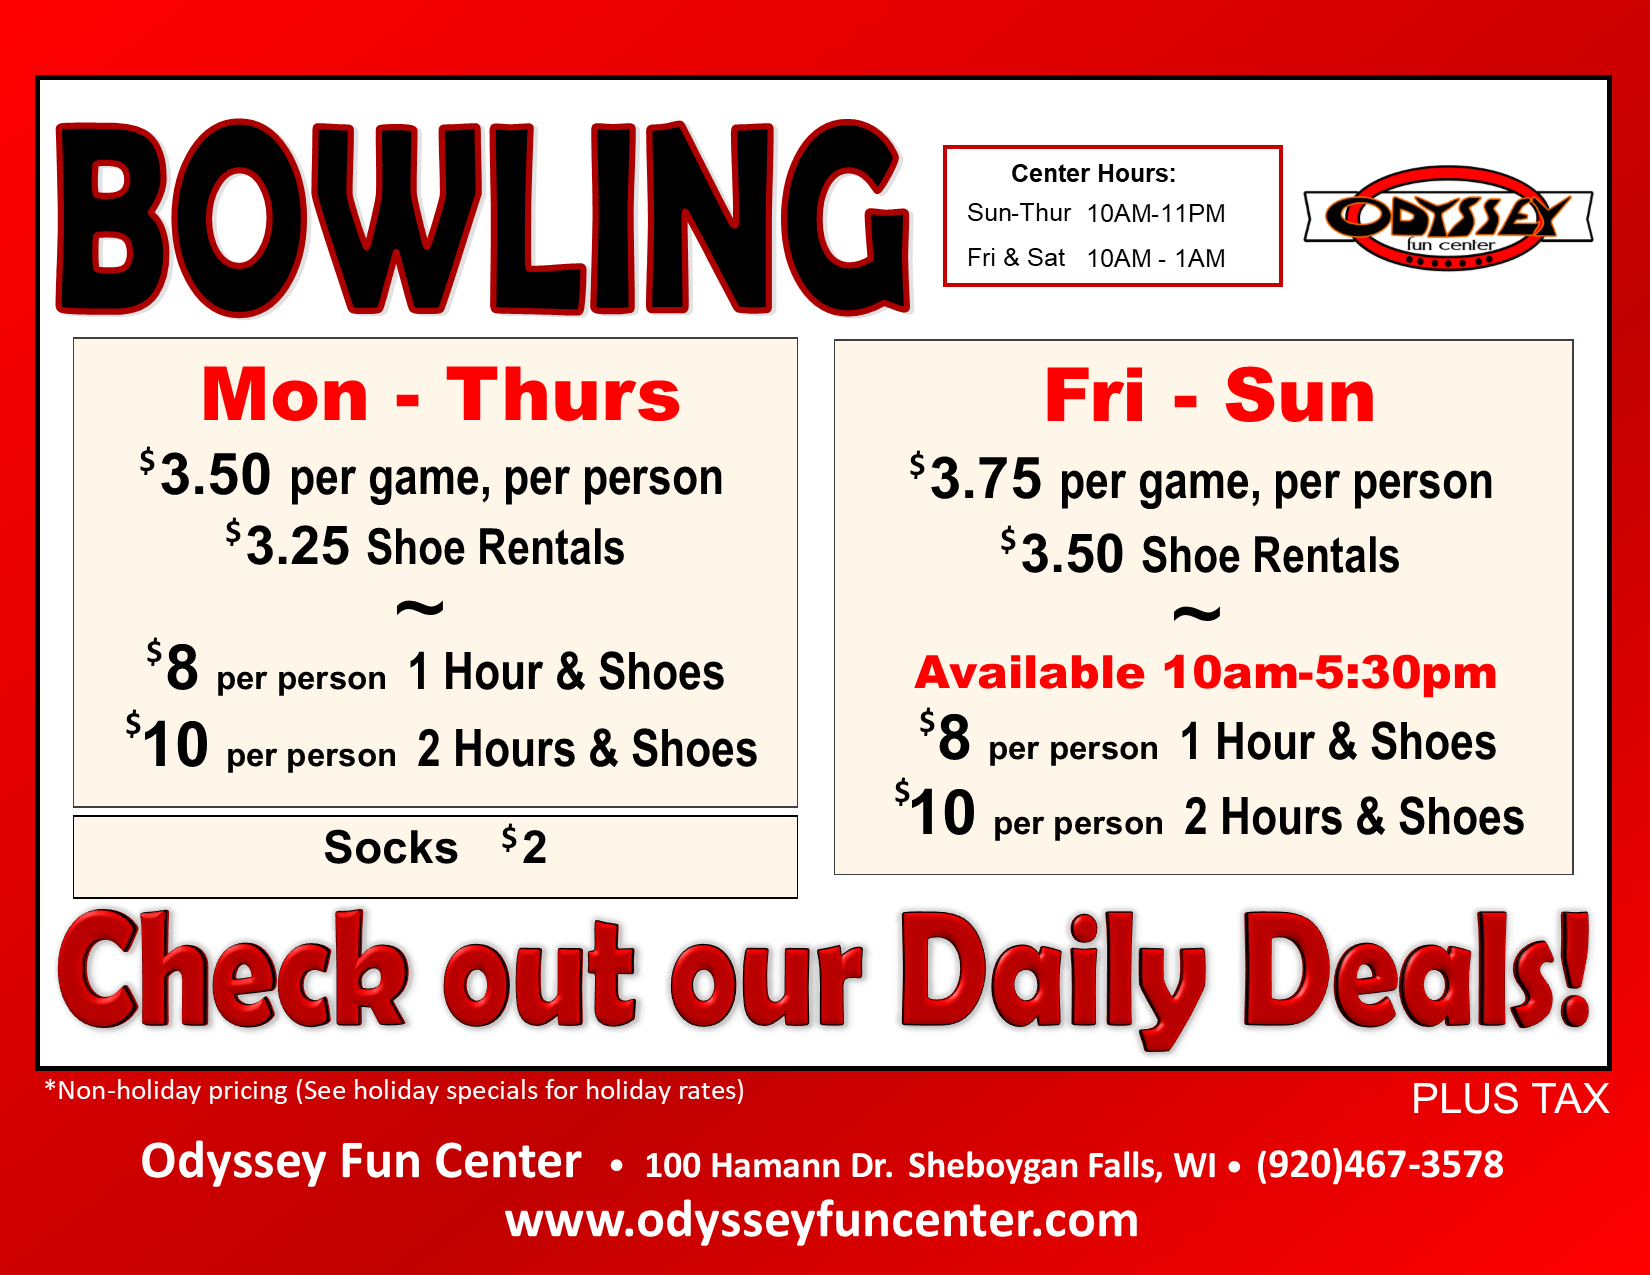 open bowling | open play | daytime bowling | night-time bowling | standard bowling rates | per person bowling rates | shoe rental rates | February 2020 | odyssey fun center | sheboygan, wi